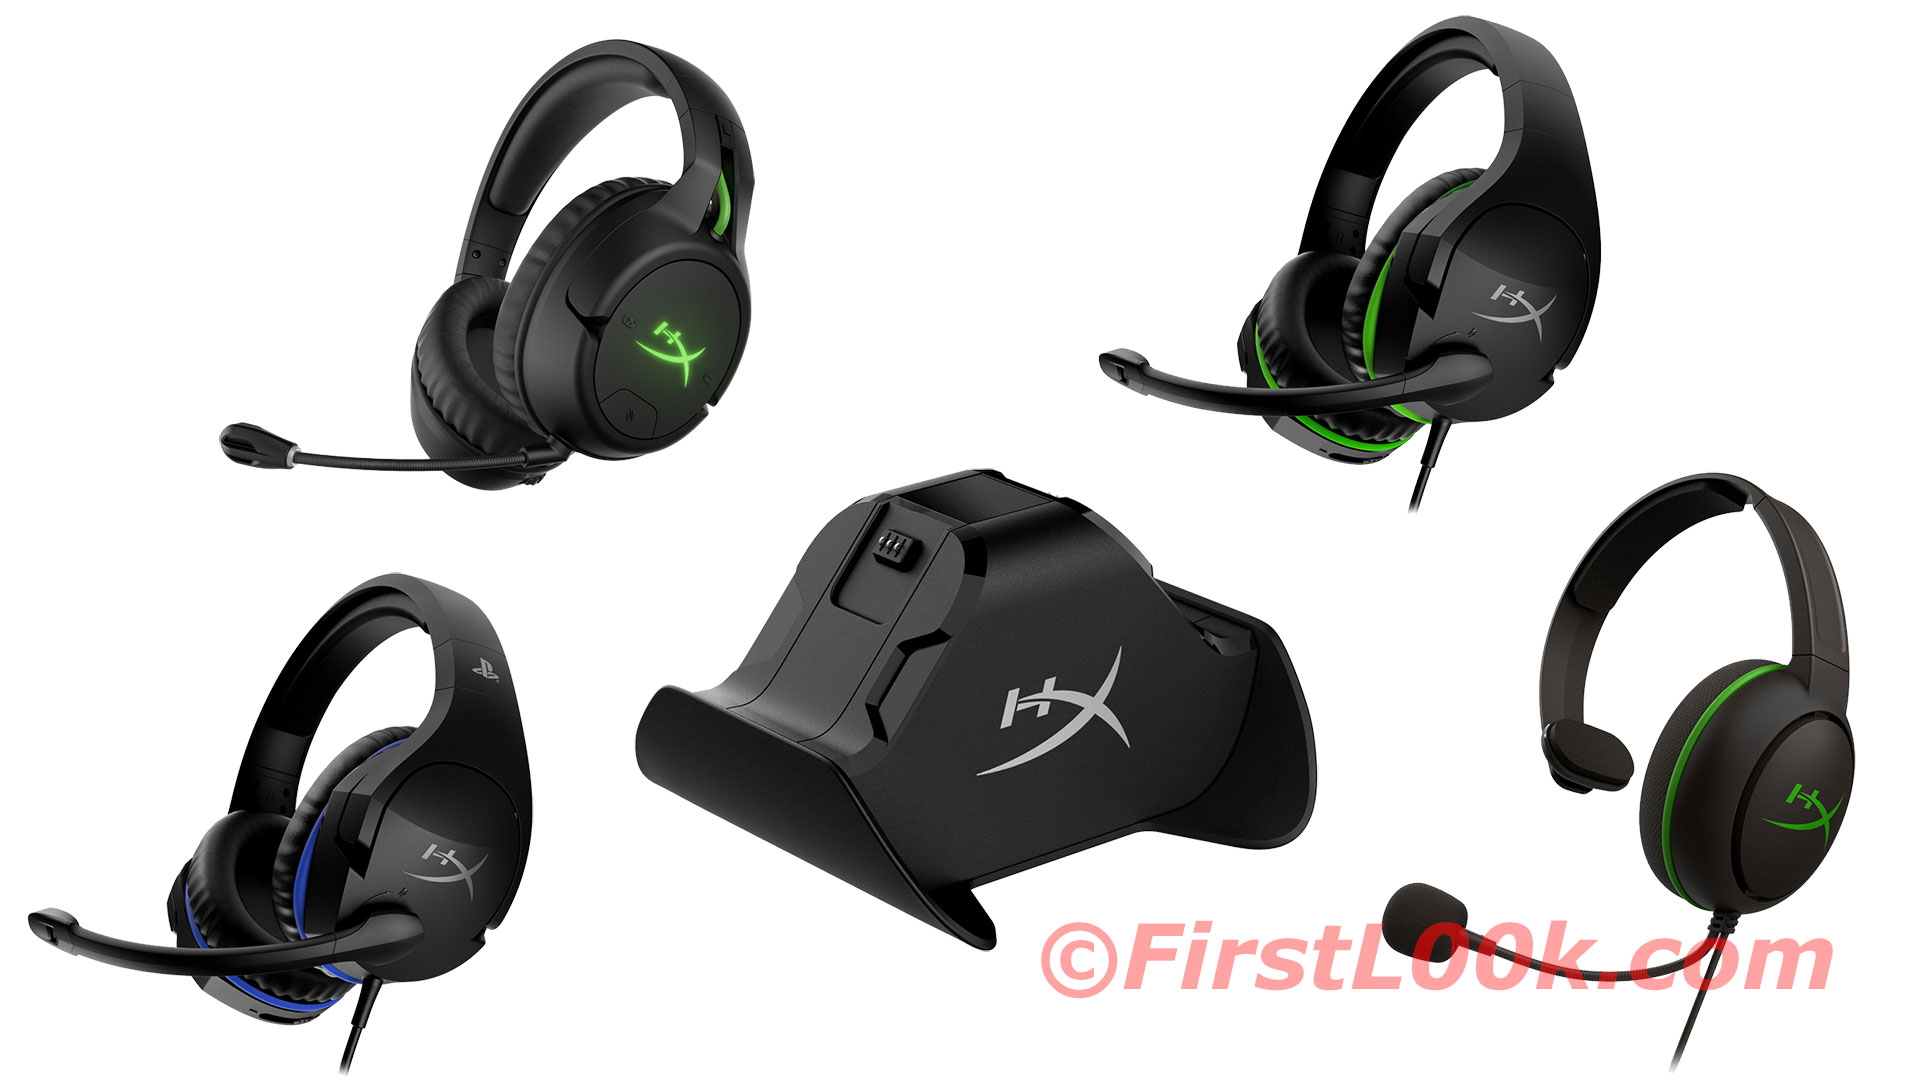 Xbox & Playstation headsets